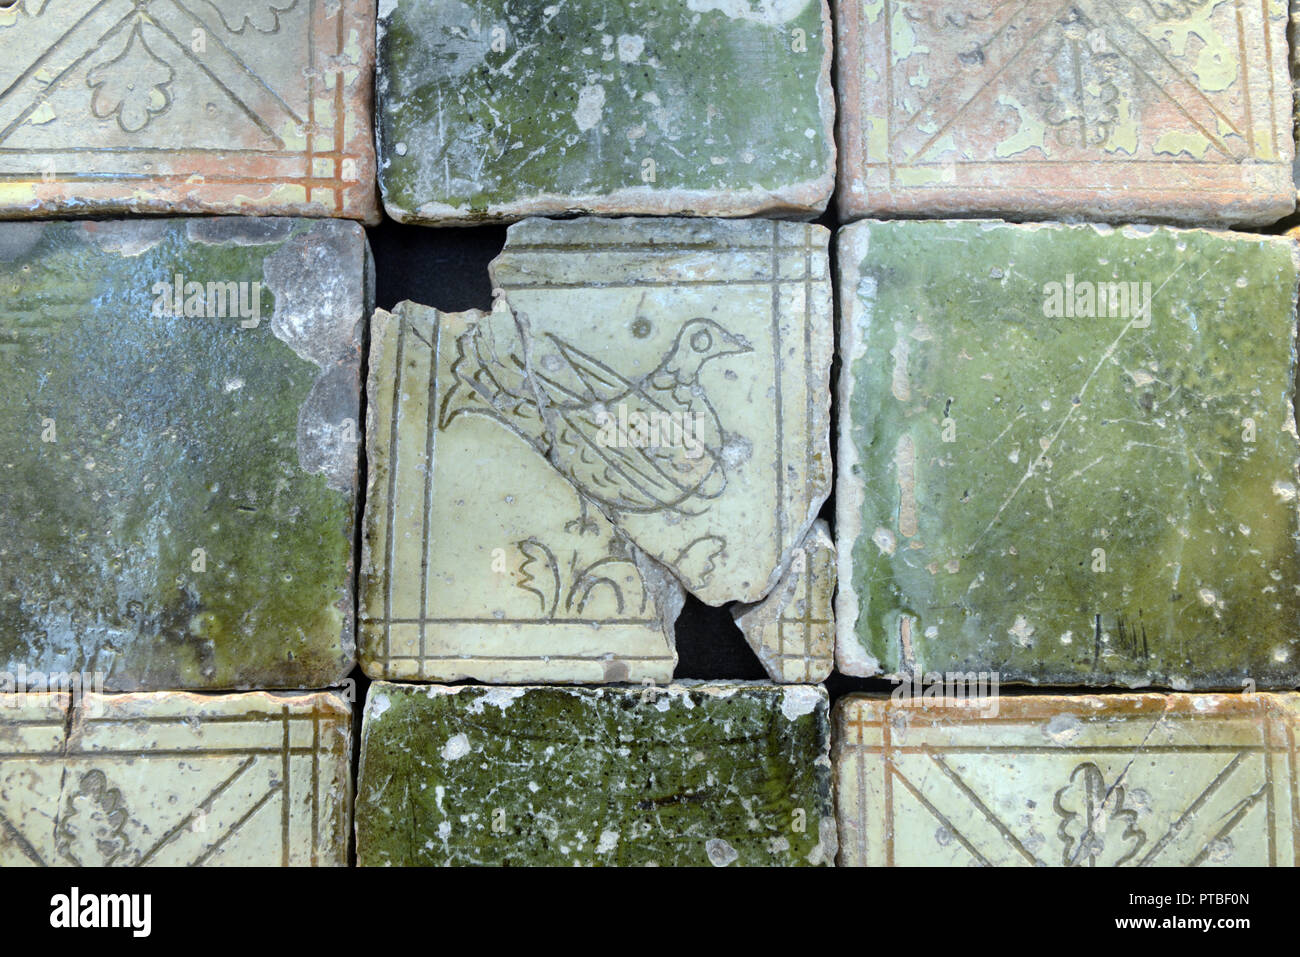 c17th Floor Tiles with Bird design from the Ruined Church of Châteauneuf-les-Moustiers in the Verdon Gorge Alpes-de-Haute-Provence France - Stock Image